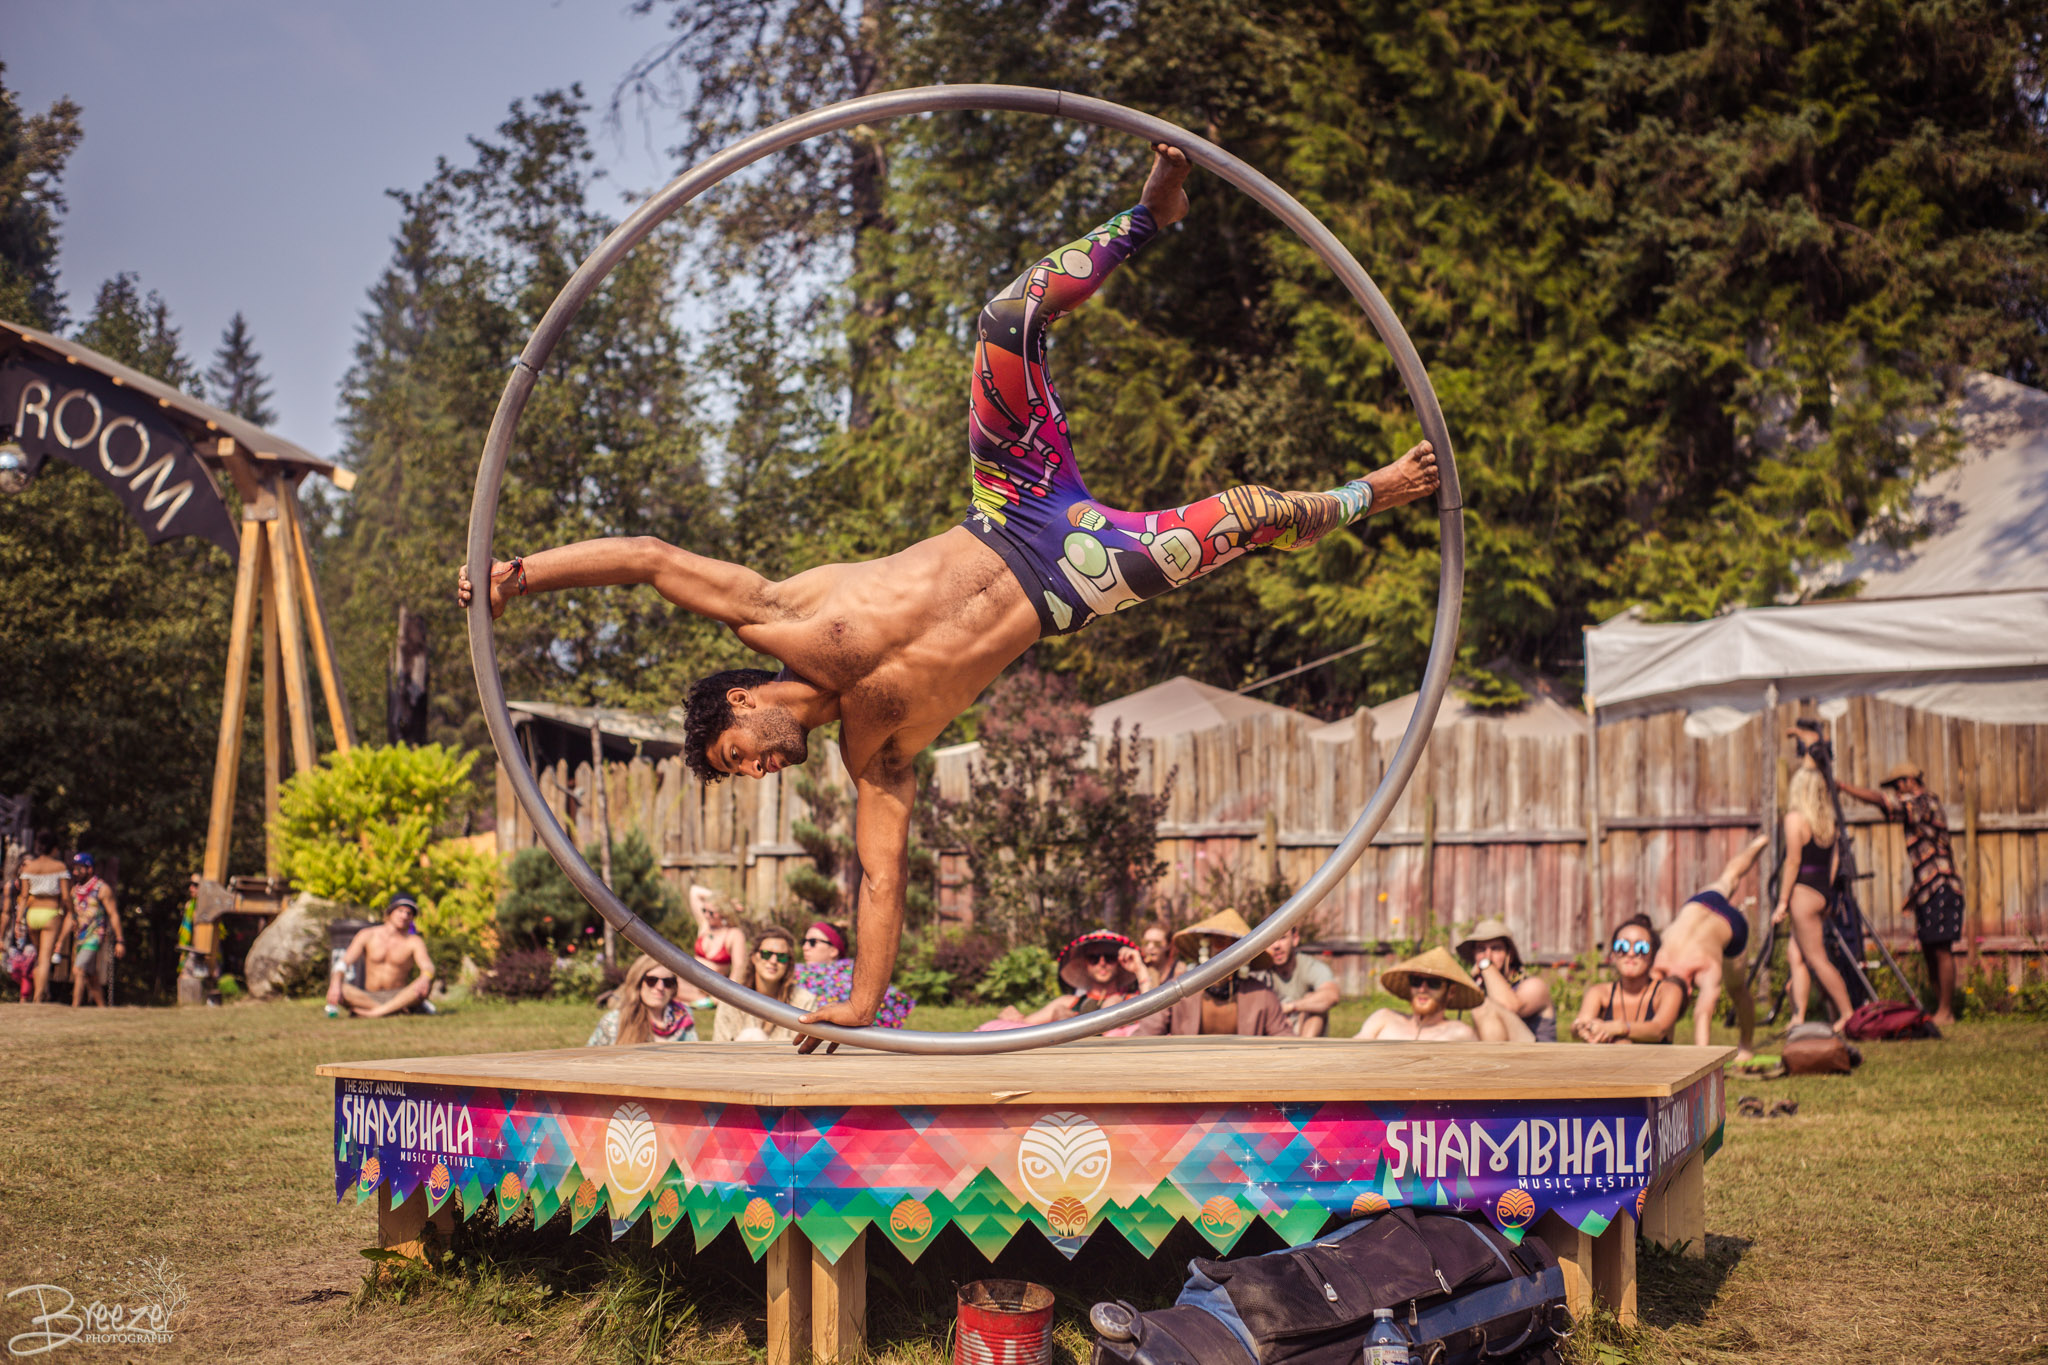 Brie'Ana Breeze Photography & Media - Shambhala 2018-1221.jpg